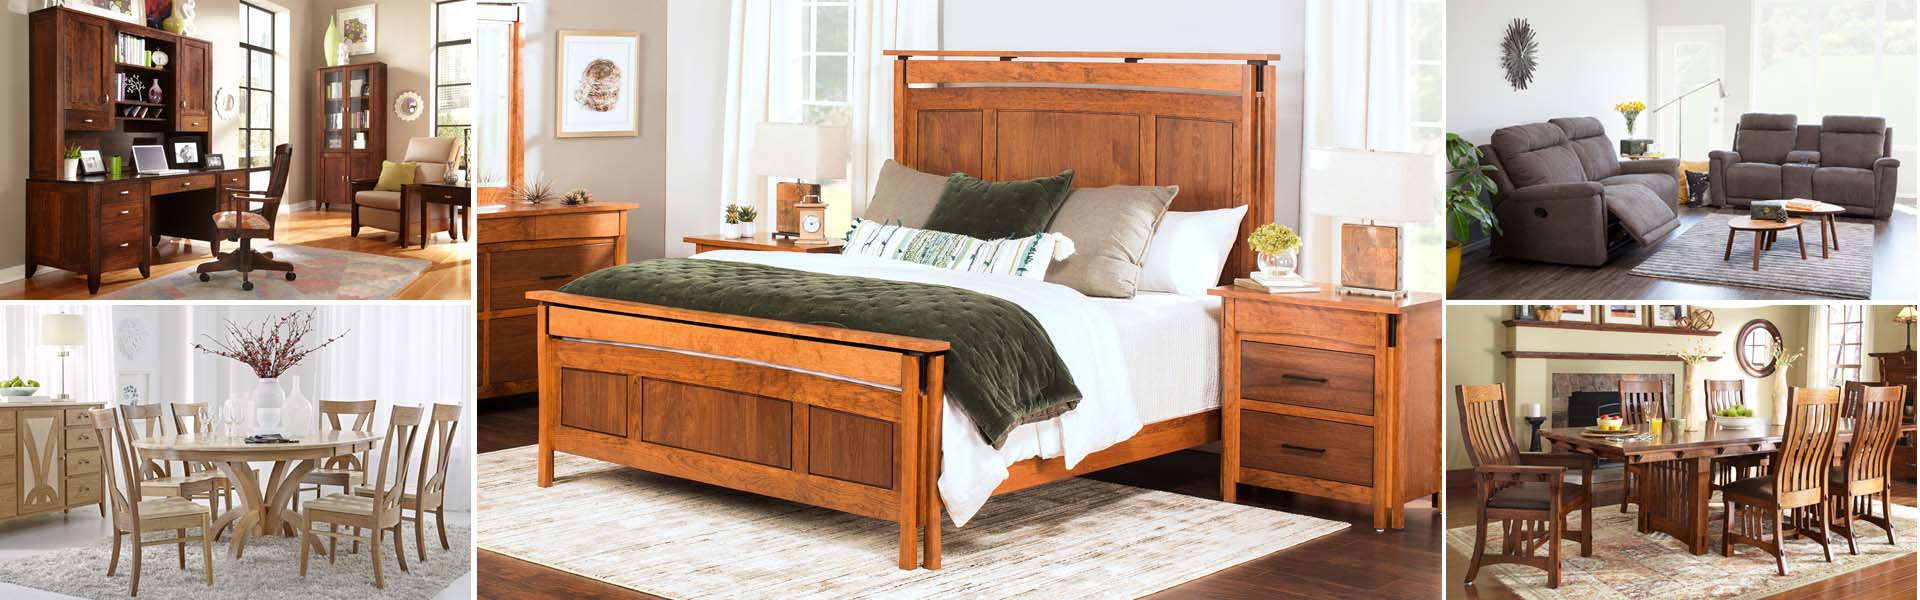 All Handcrafted Furniture – 15% Off